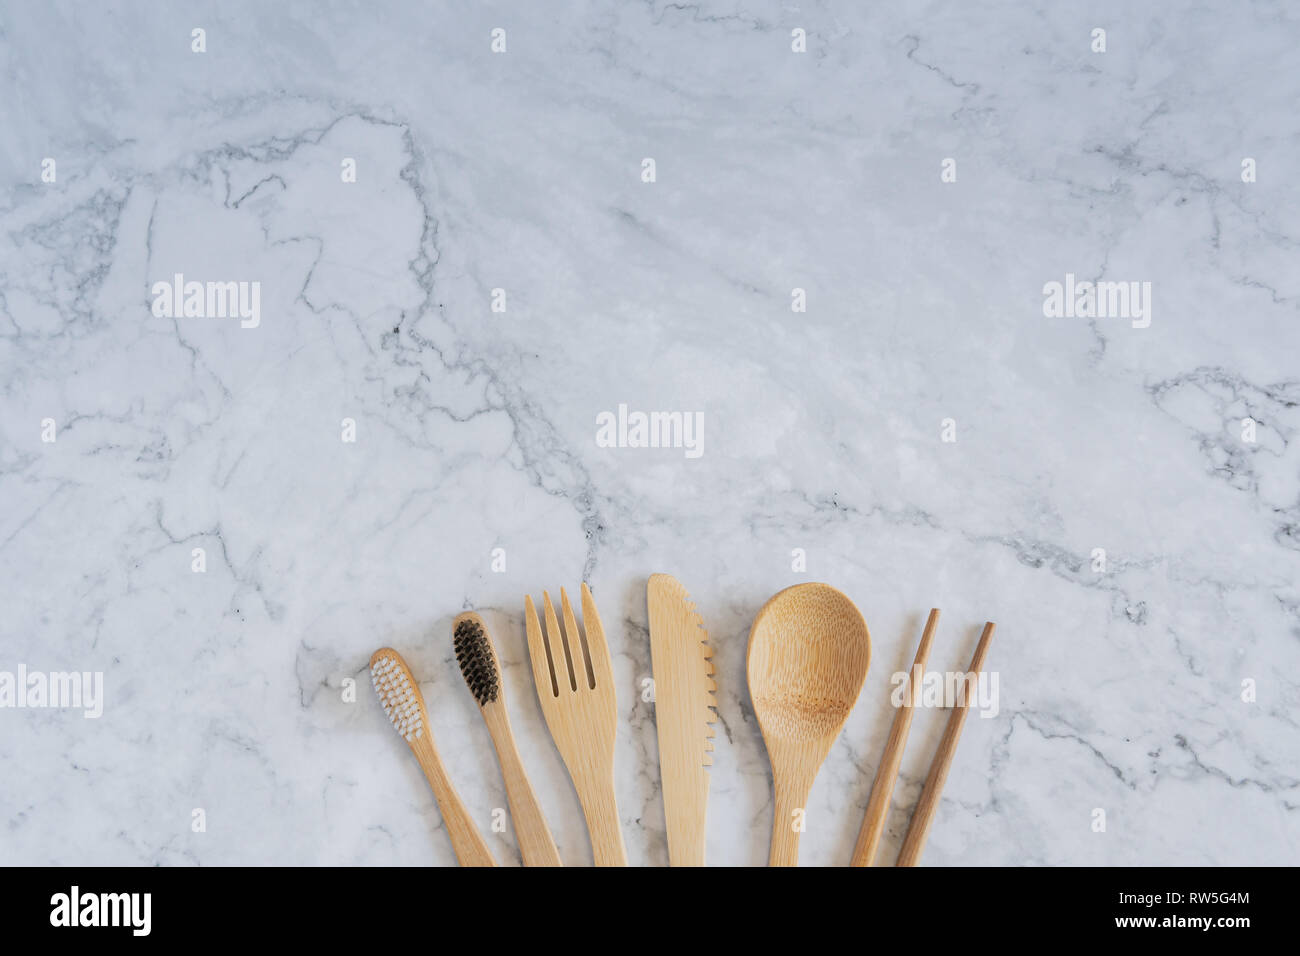 Bamboo Wood Toothbrush On Clean White Marble Table Top View ...